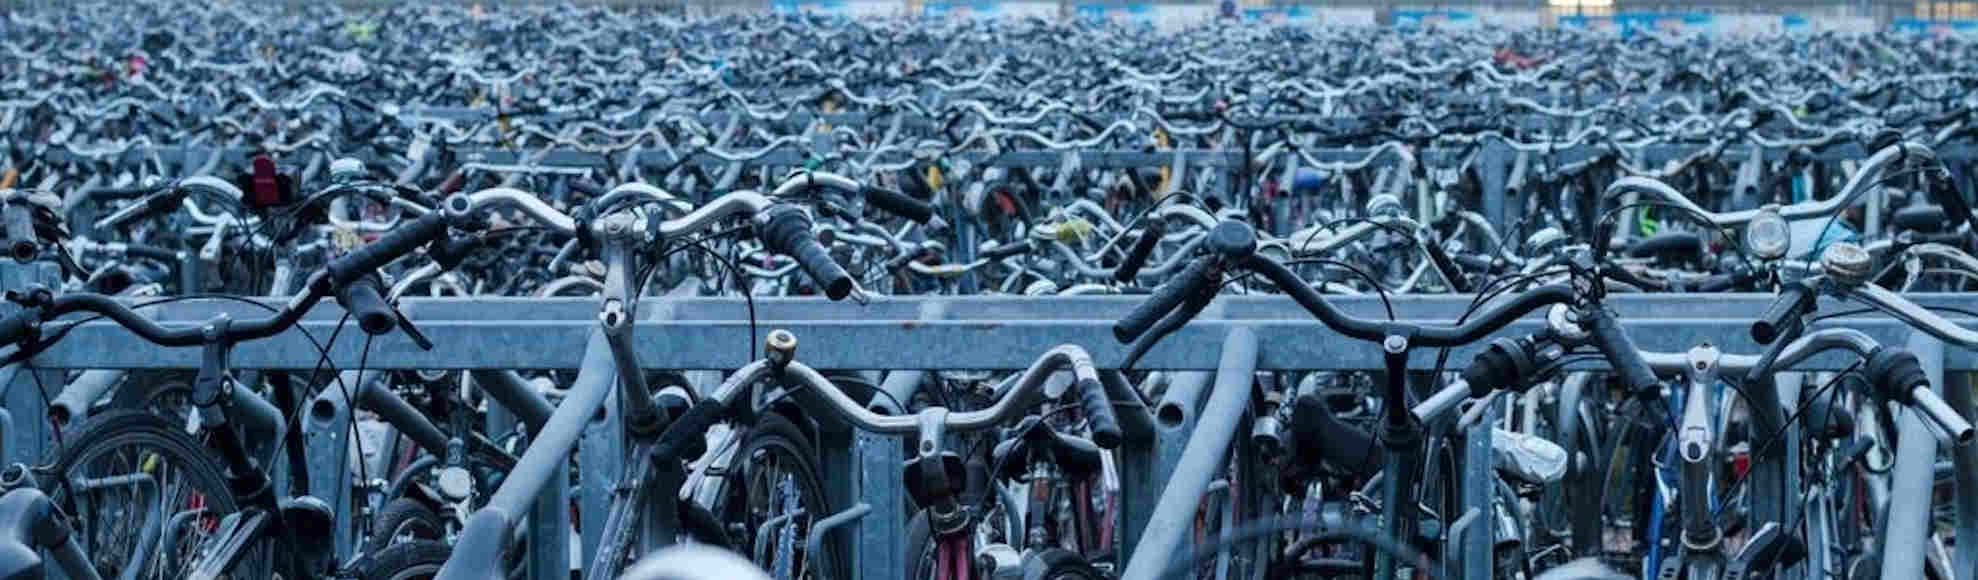 Half a billion bikes in China